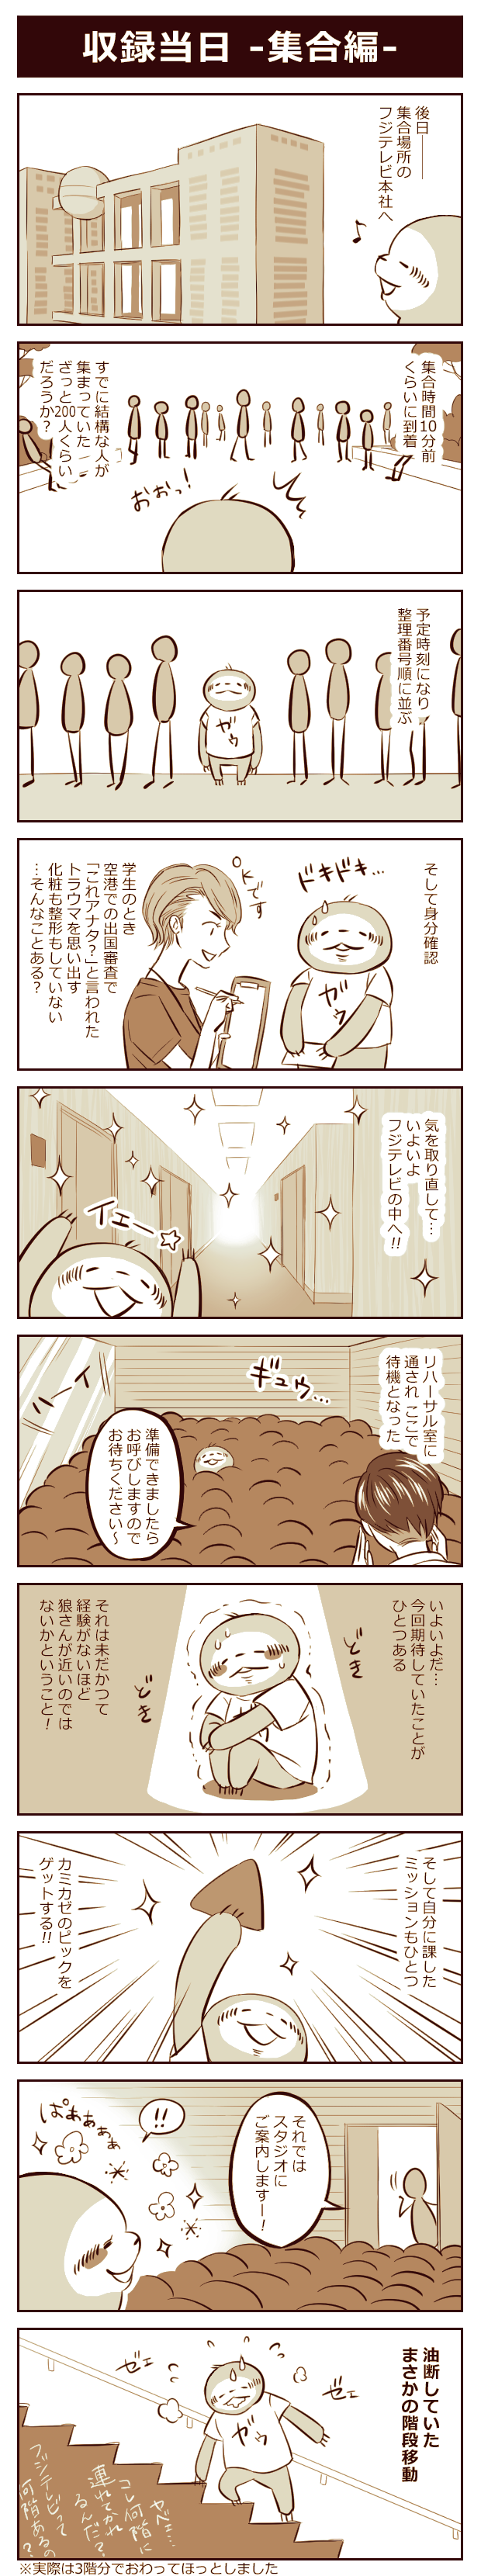 LoveMusic MWAM観覧漫画 #2